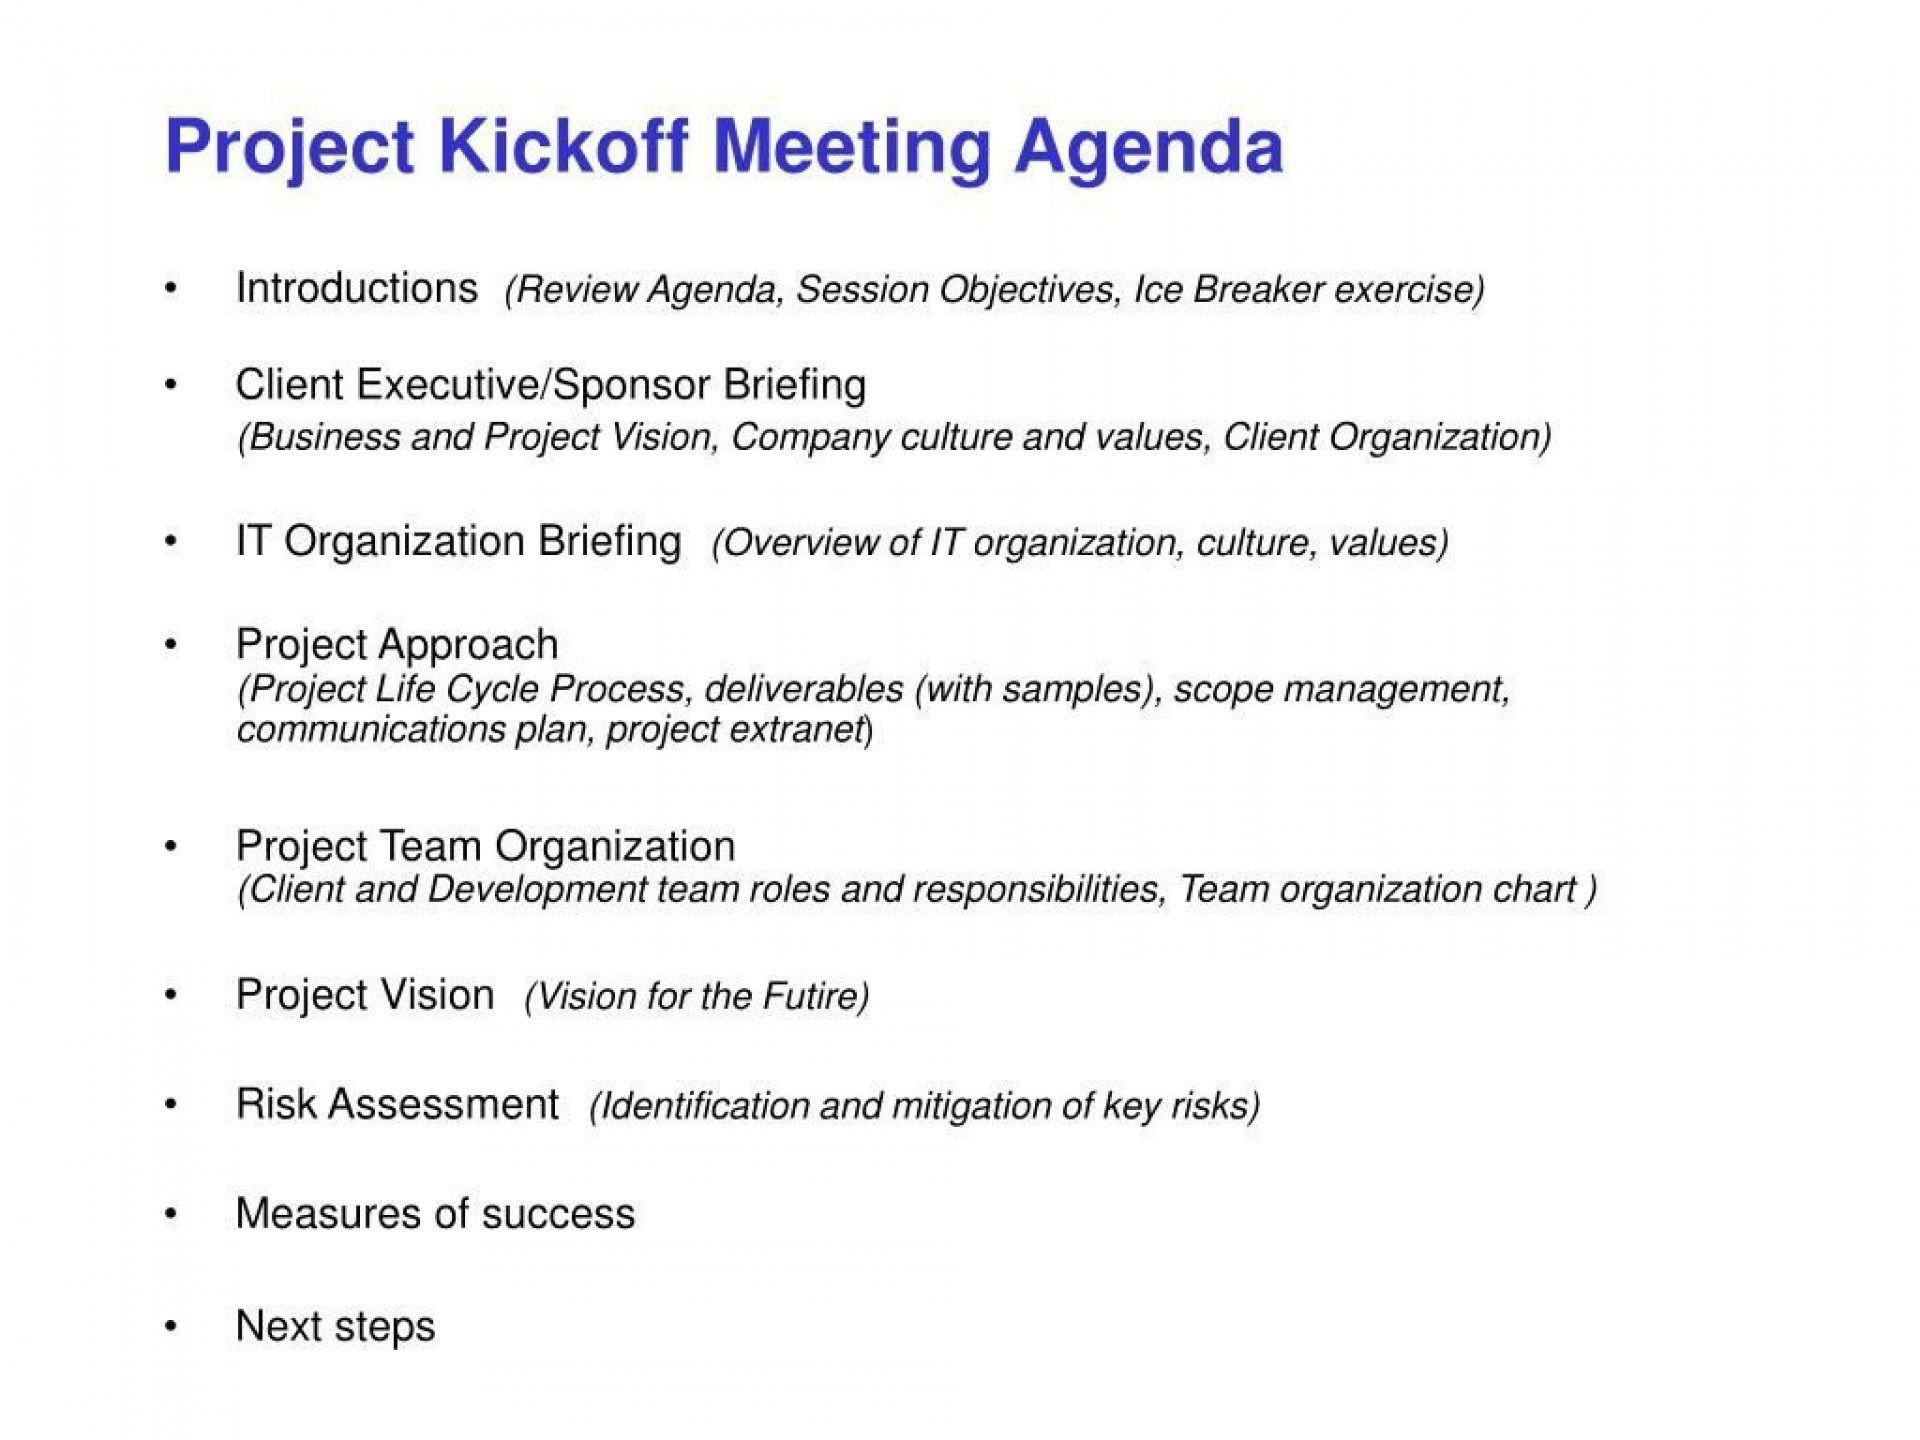 005 Surprising Construction Project Kickoff Meeting Agenda Template Picture 1920